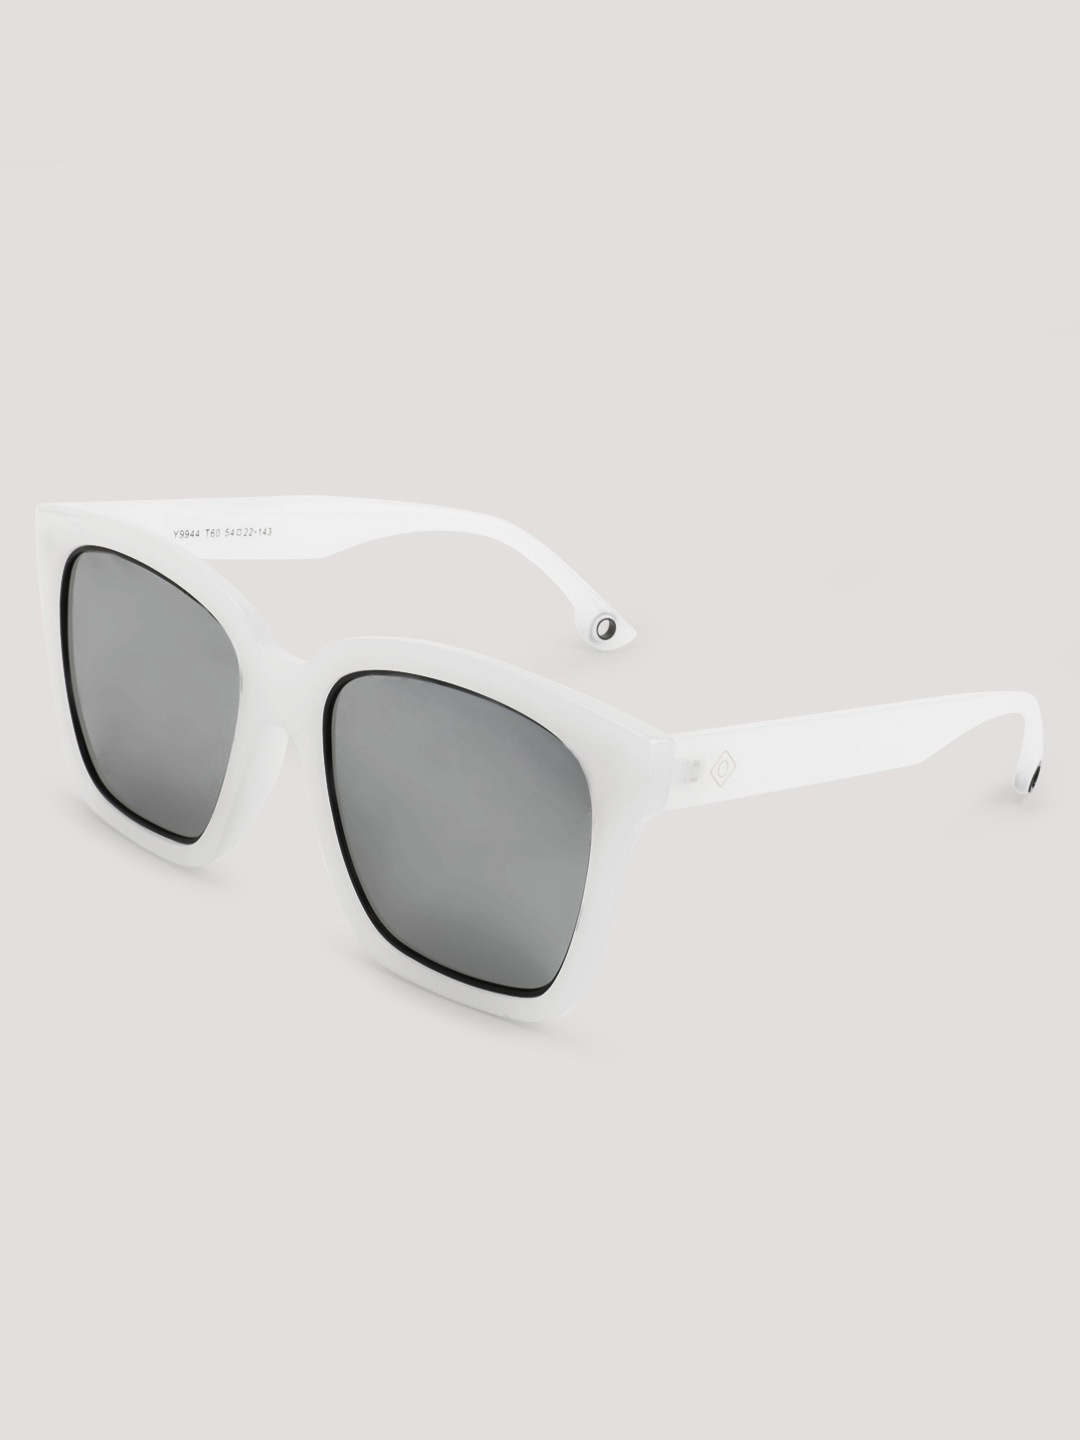 Sneak-a-Peek White Mirrored Square Retro Sunglasses 1